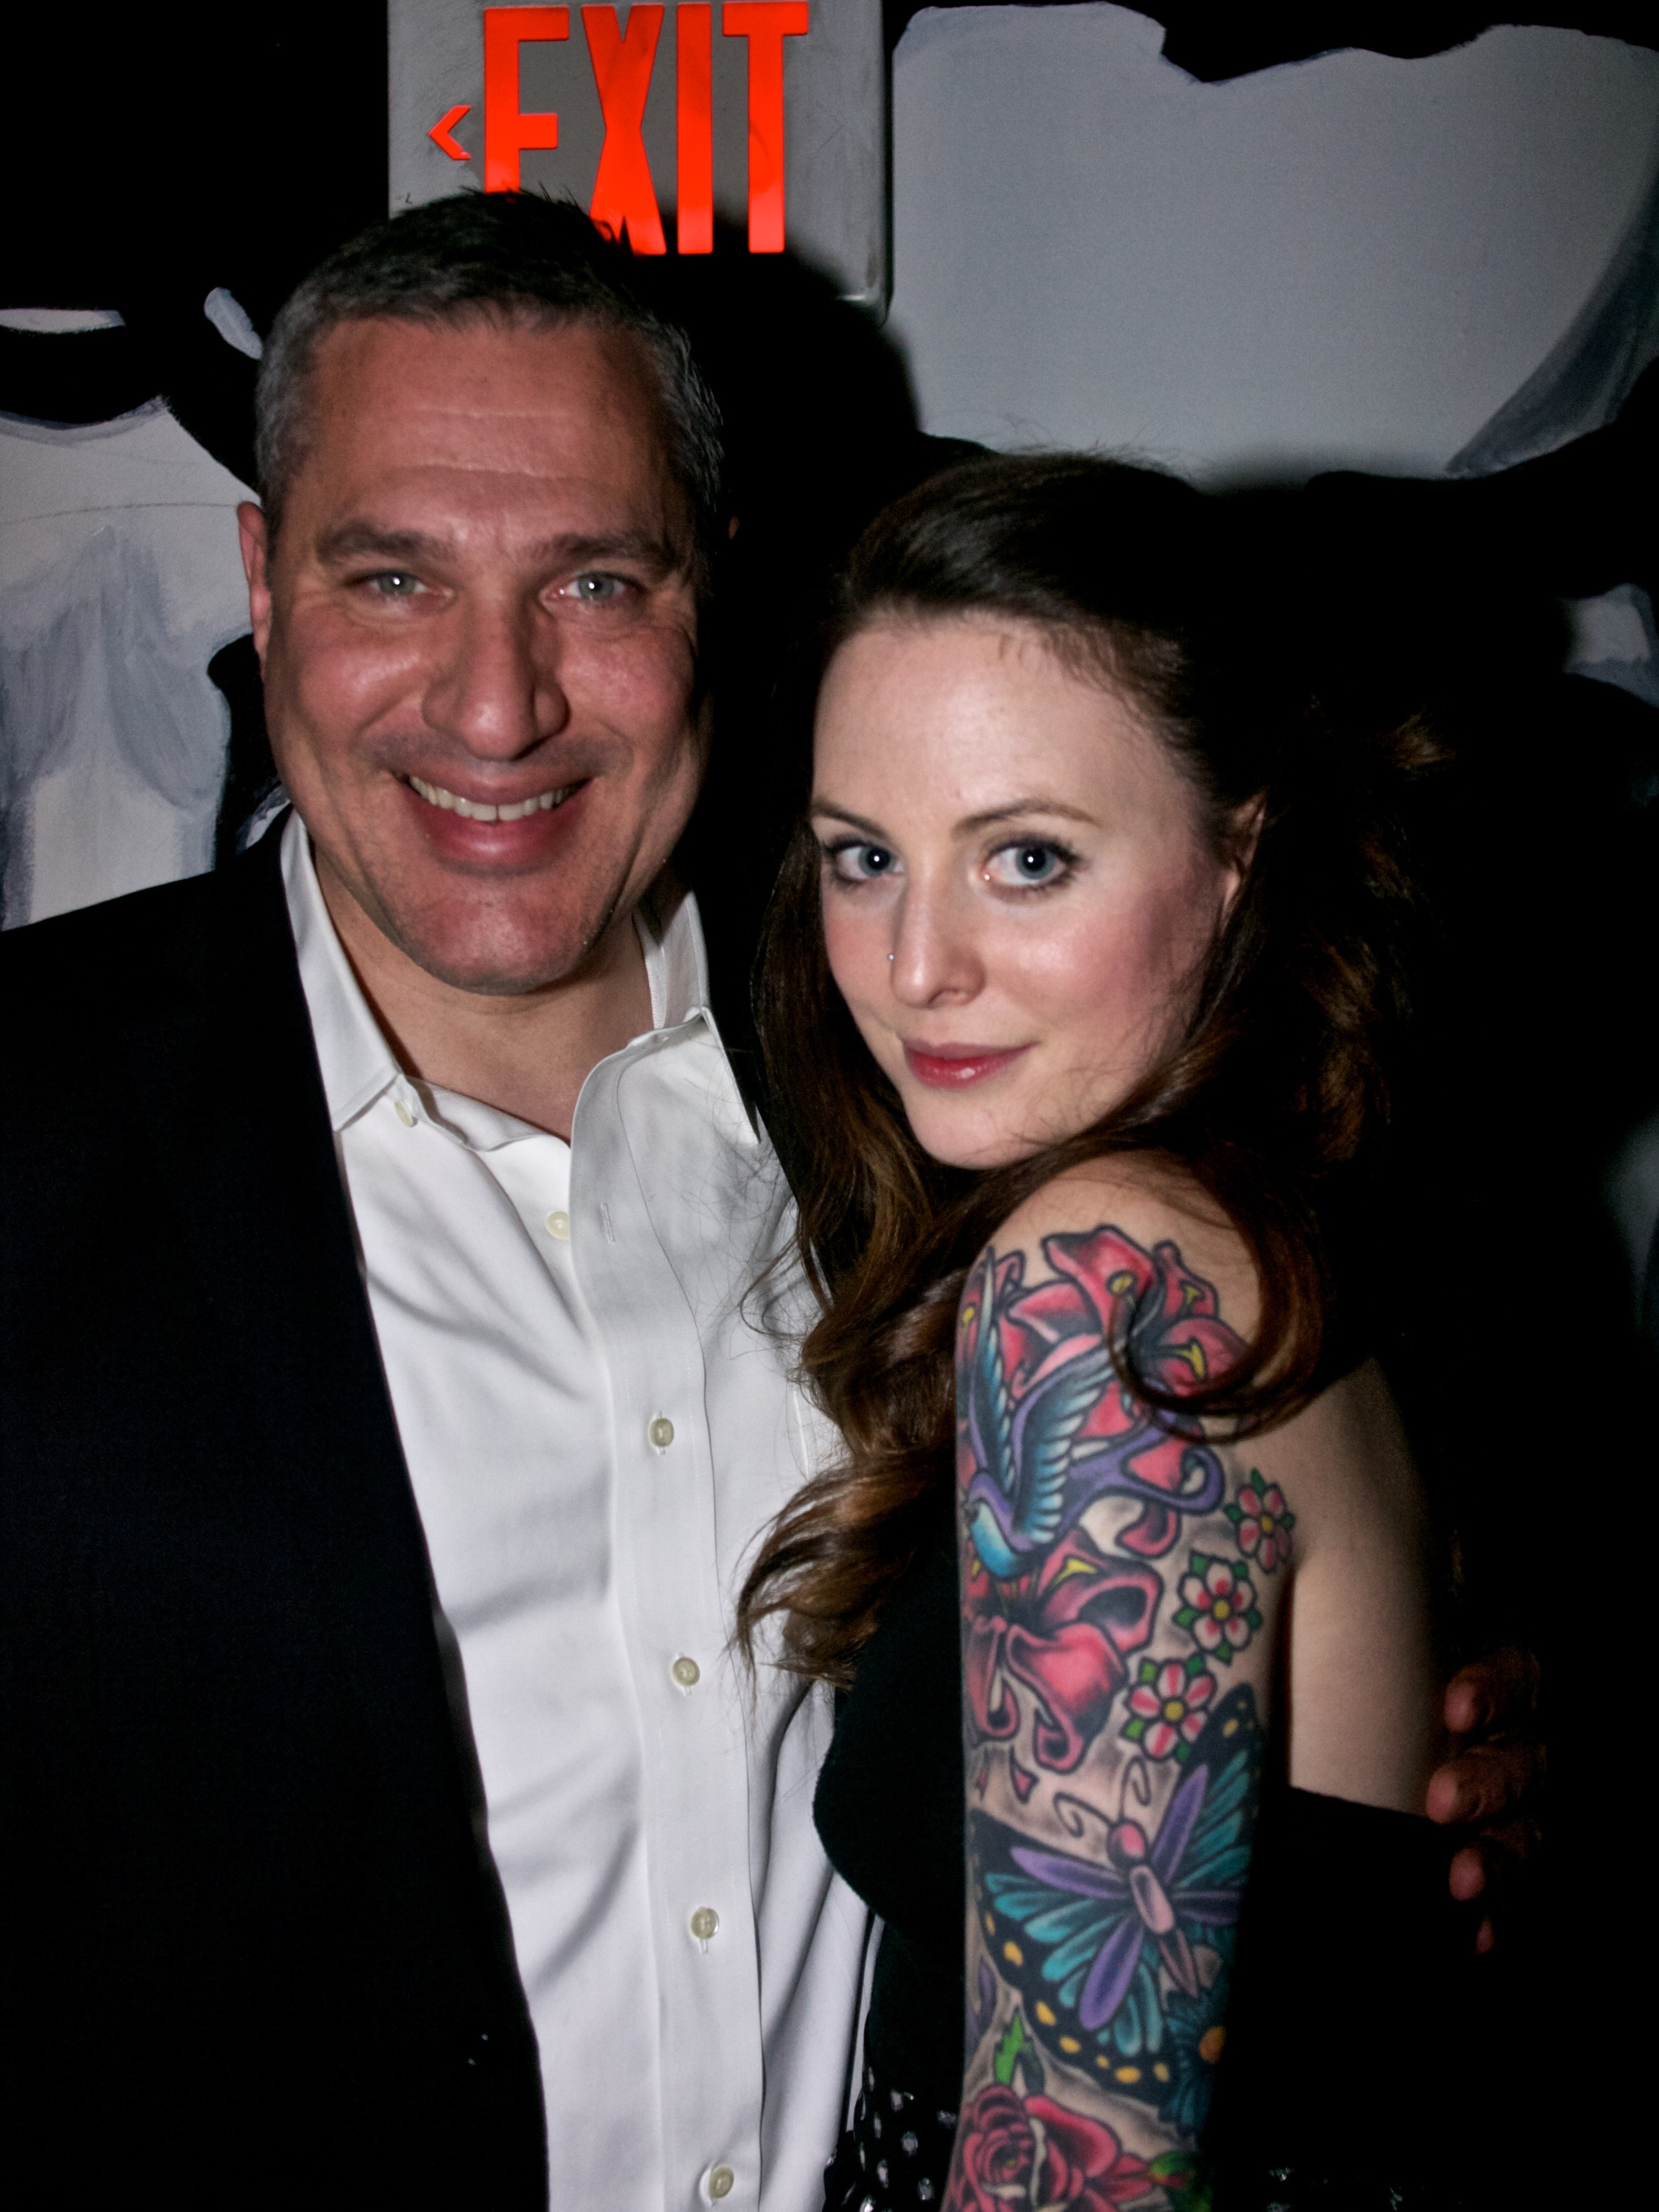 Michael and Lexie